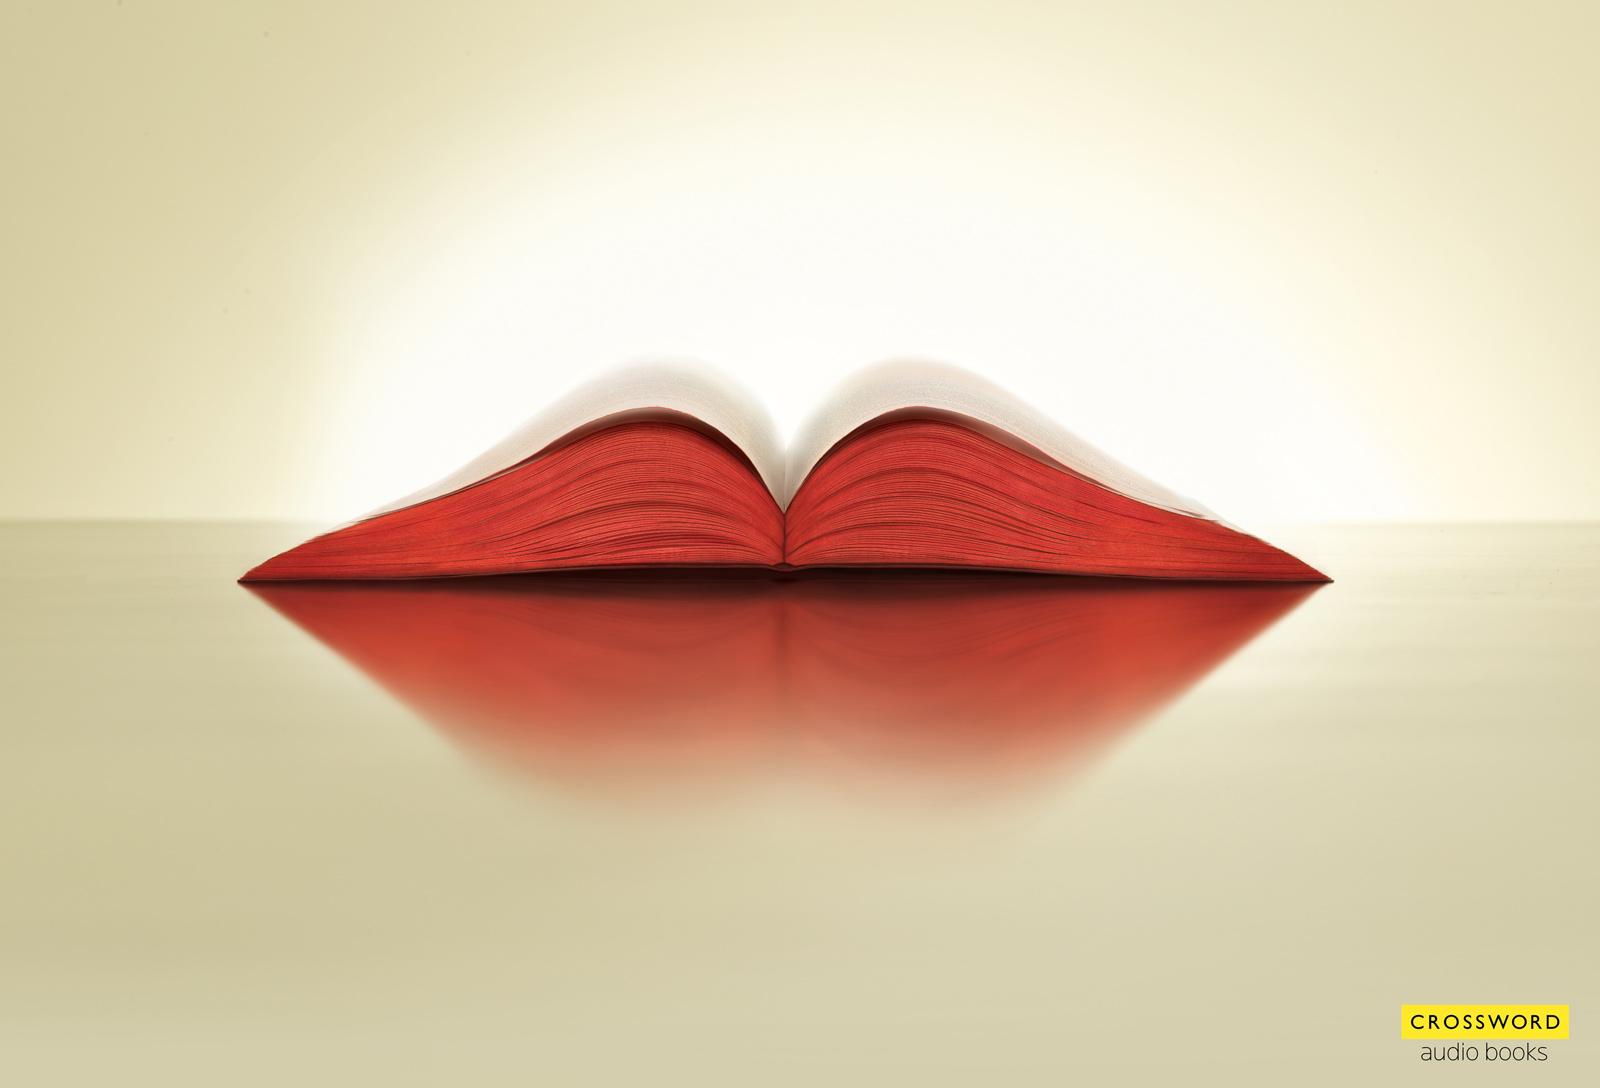 Crossword Bookstores Print Ad -  Lips